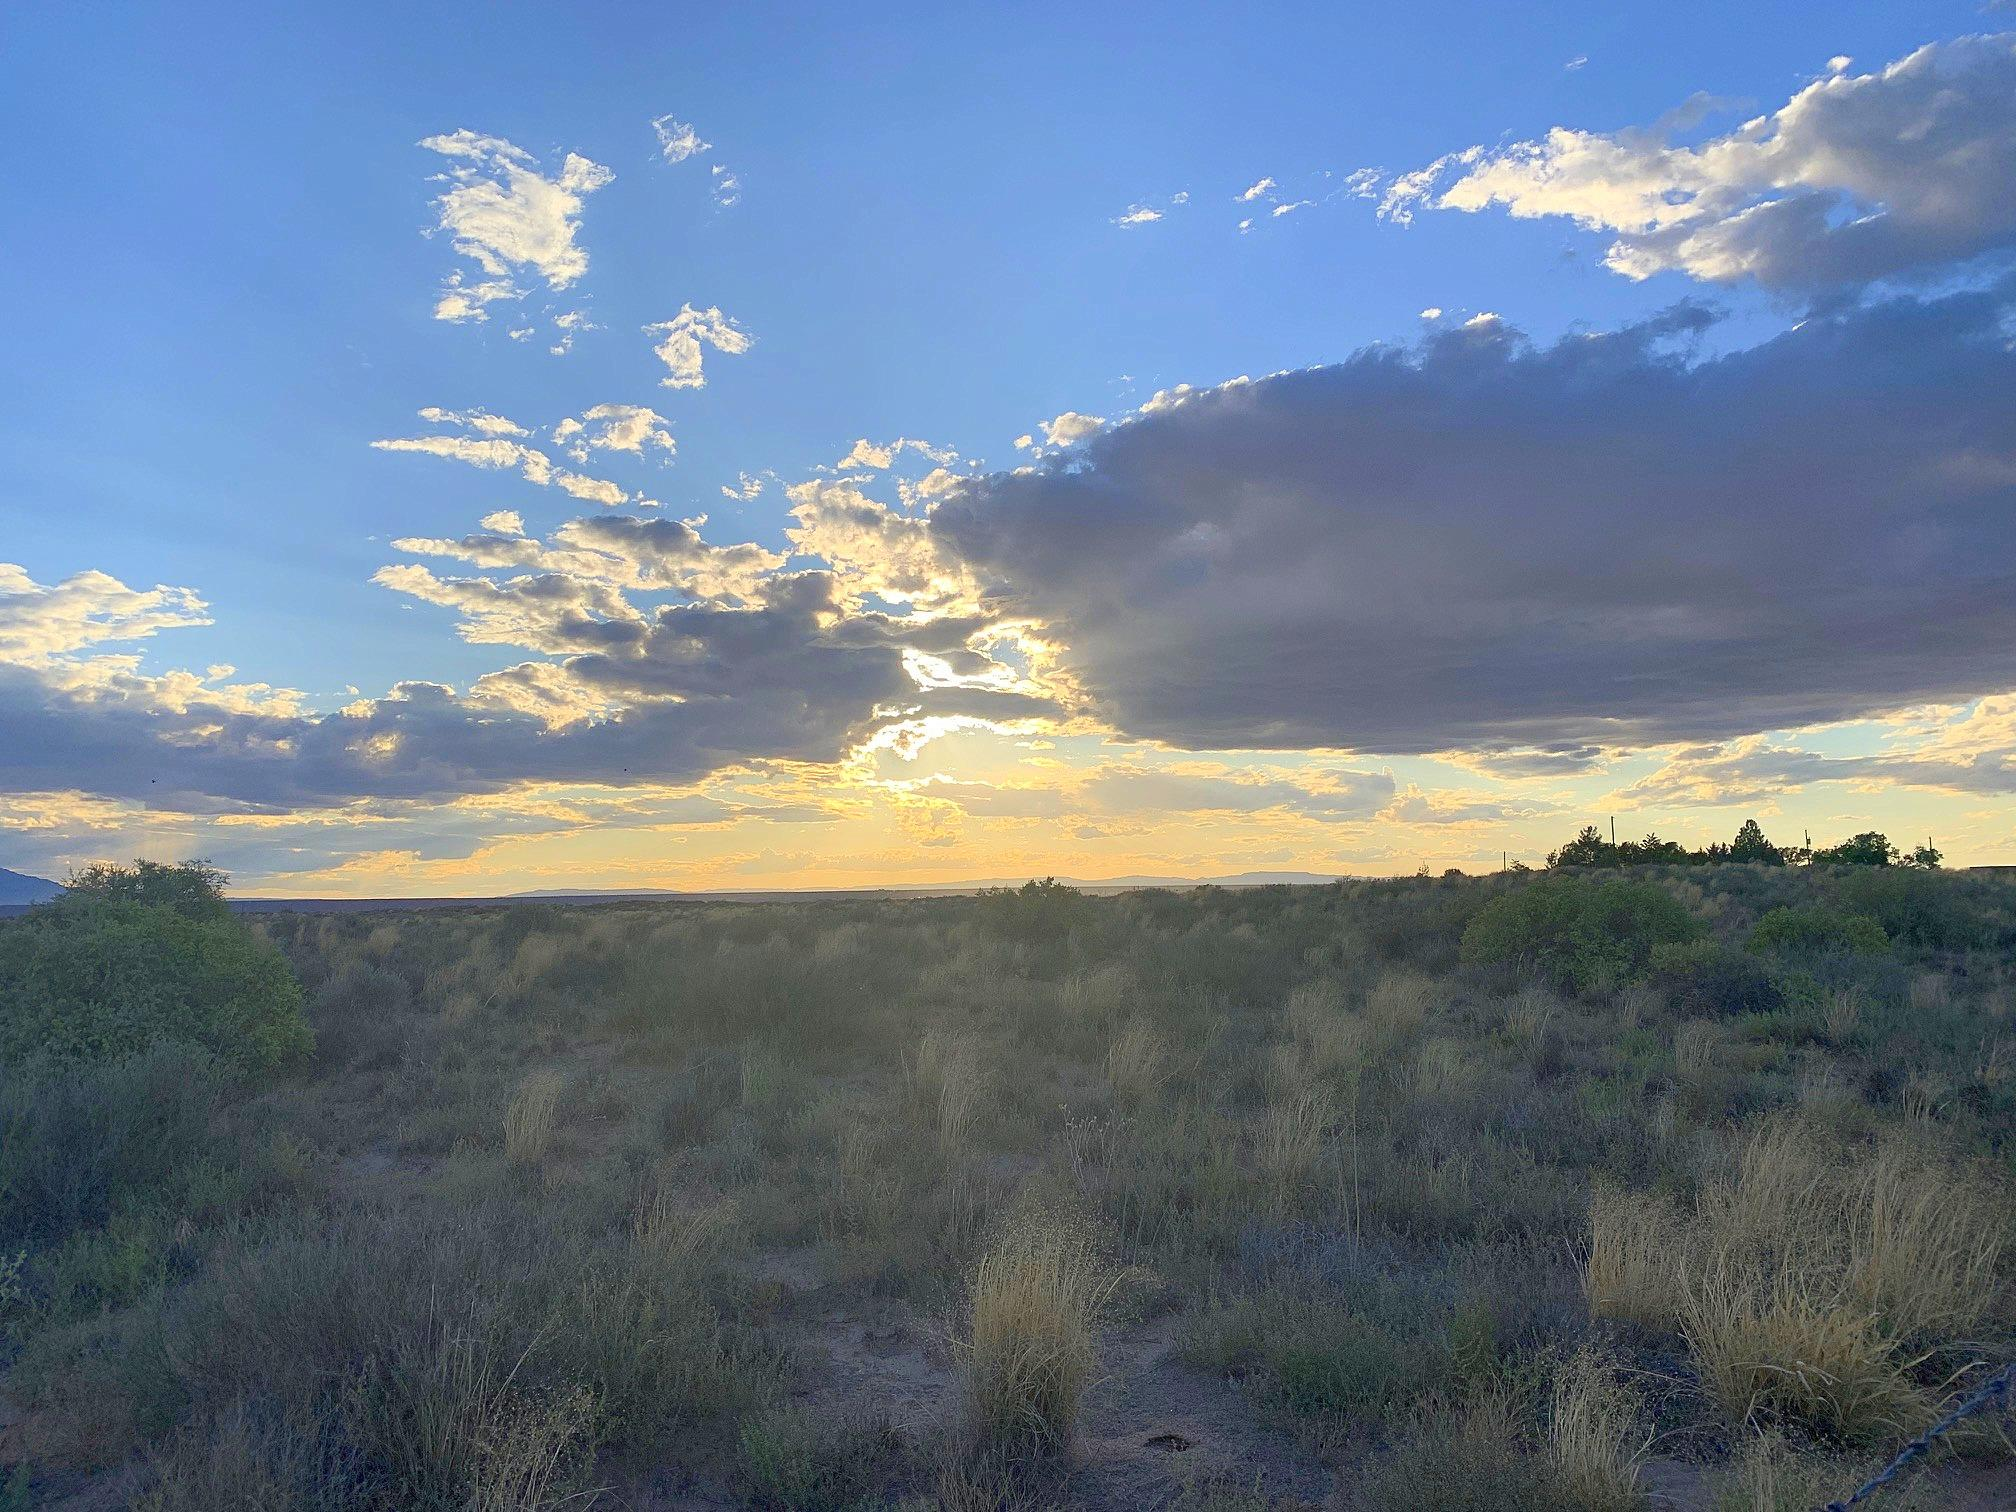 Lot 14 Highway 47, Rio Communities, NM 87002 - Rio Communities, NM real estate listing